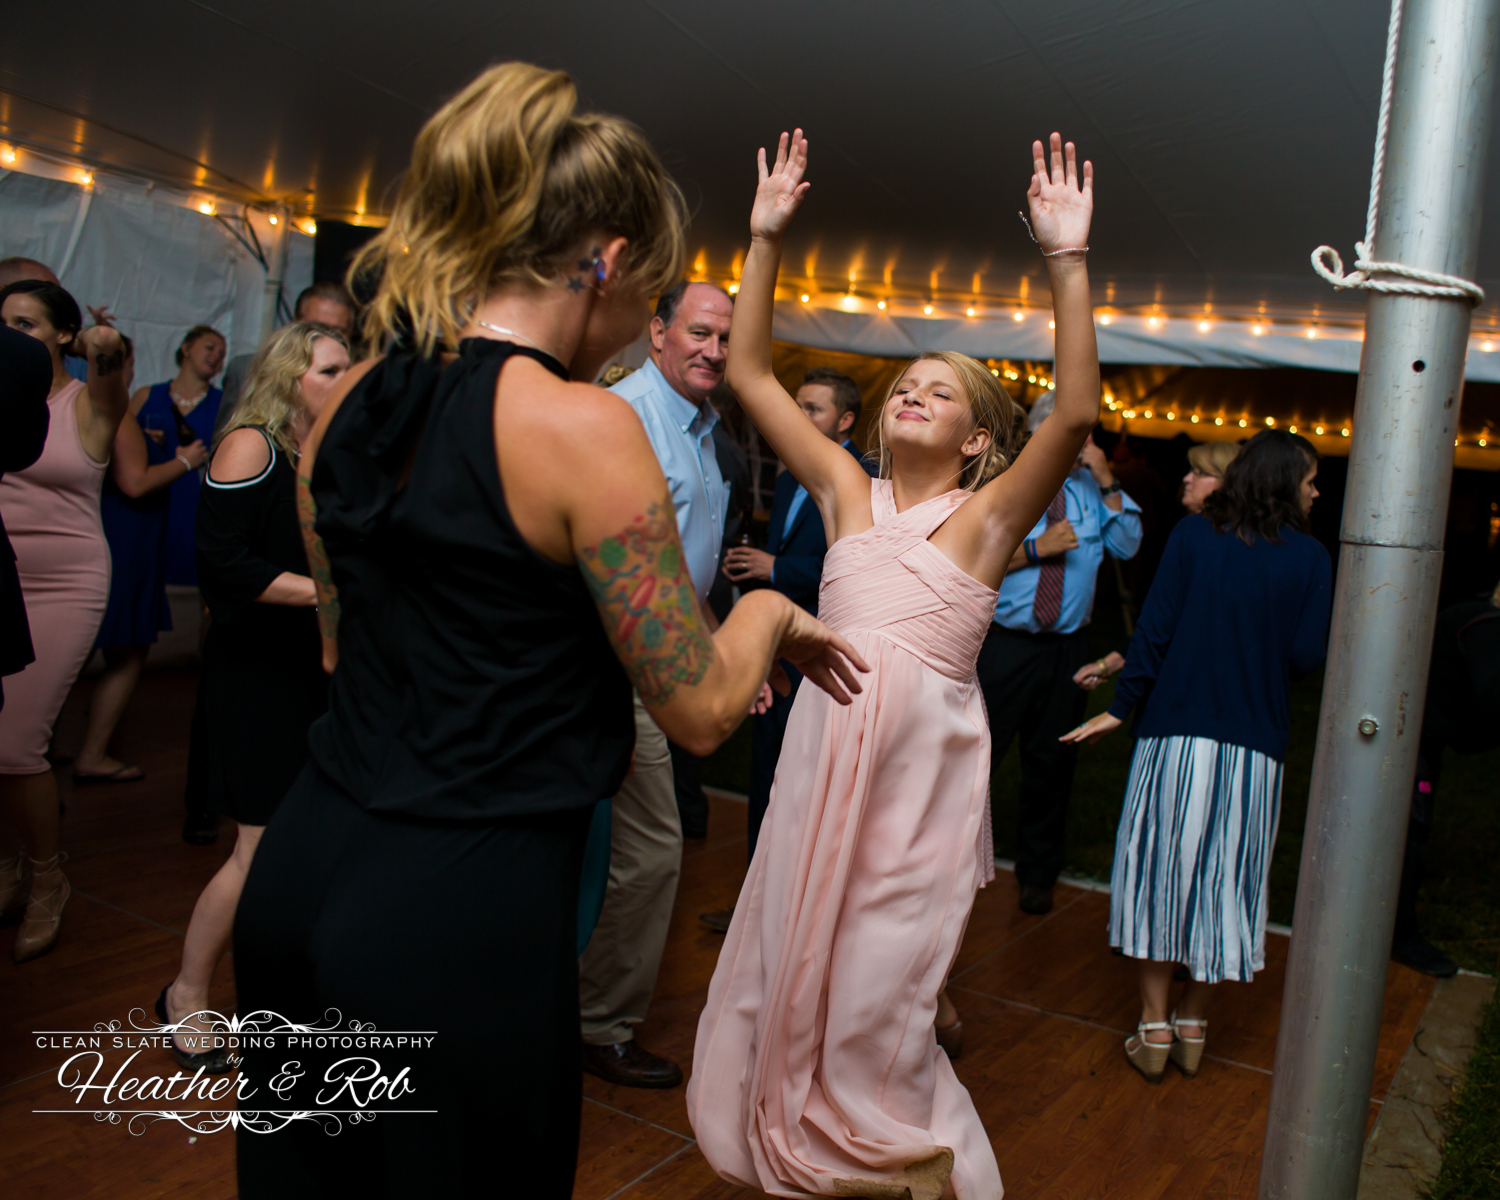 young woman dancing with hands up at wedding